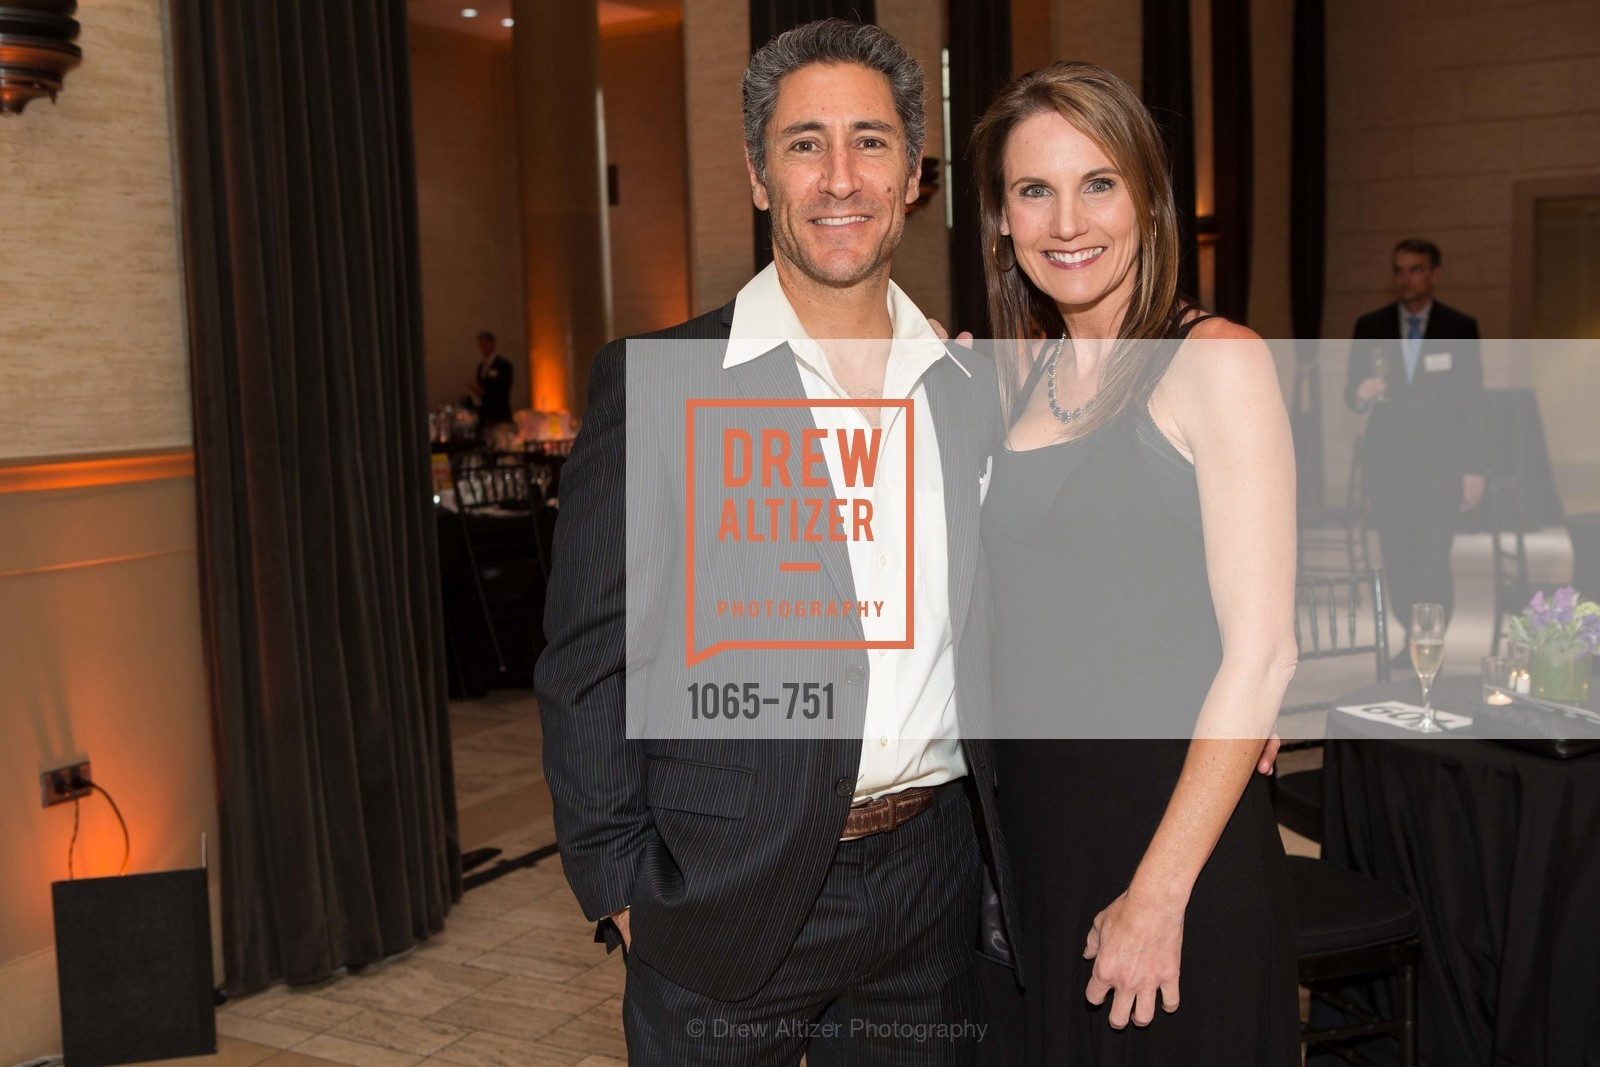 Dan Herz, Melissa Sebastien, CENTER FOR ENVIRONMENTAL HEALTH (CEH) 2015 Gala, Bently Reserve, May 28th, 2015,Drew Altizer, Drew Altizer Photography, full-service agency, private events, San Francisco photographer, photographer california